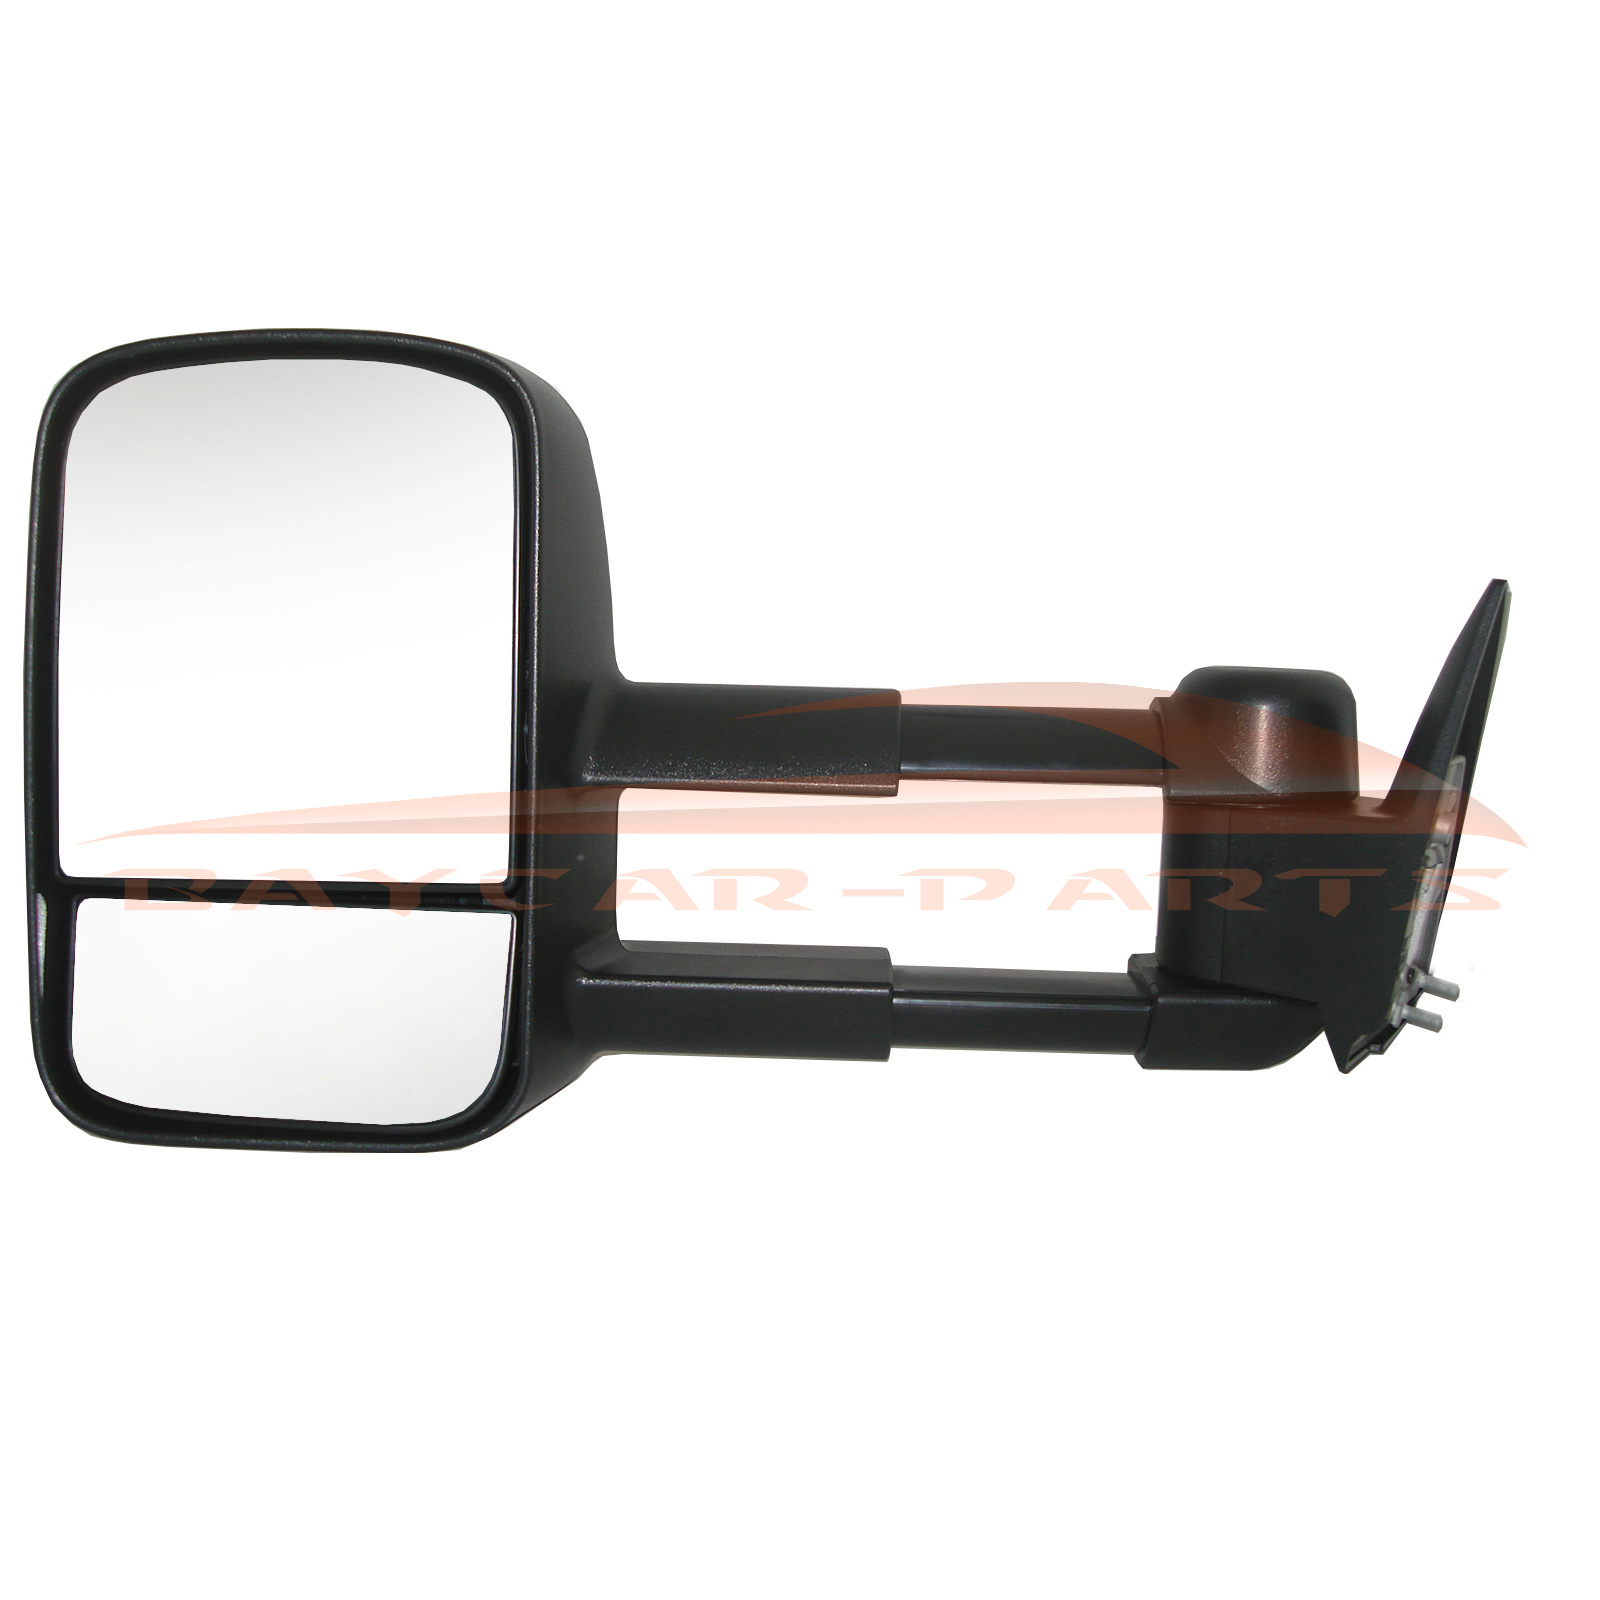 Vehicle Towing Mirrors : For chevy gmc towing mirrors manual